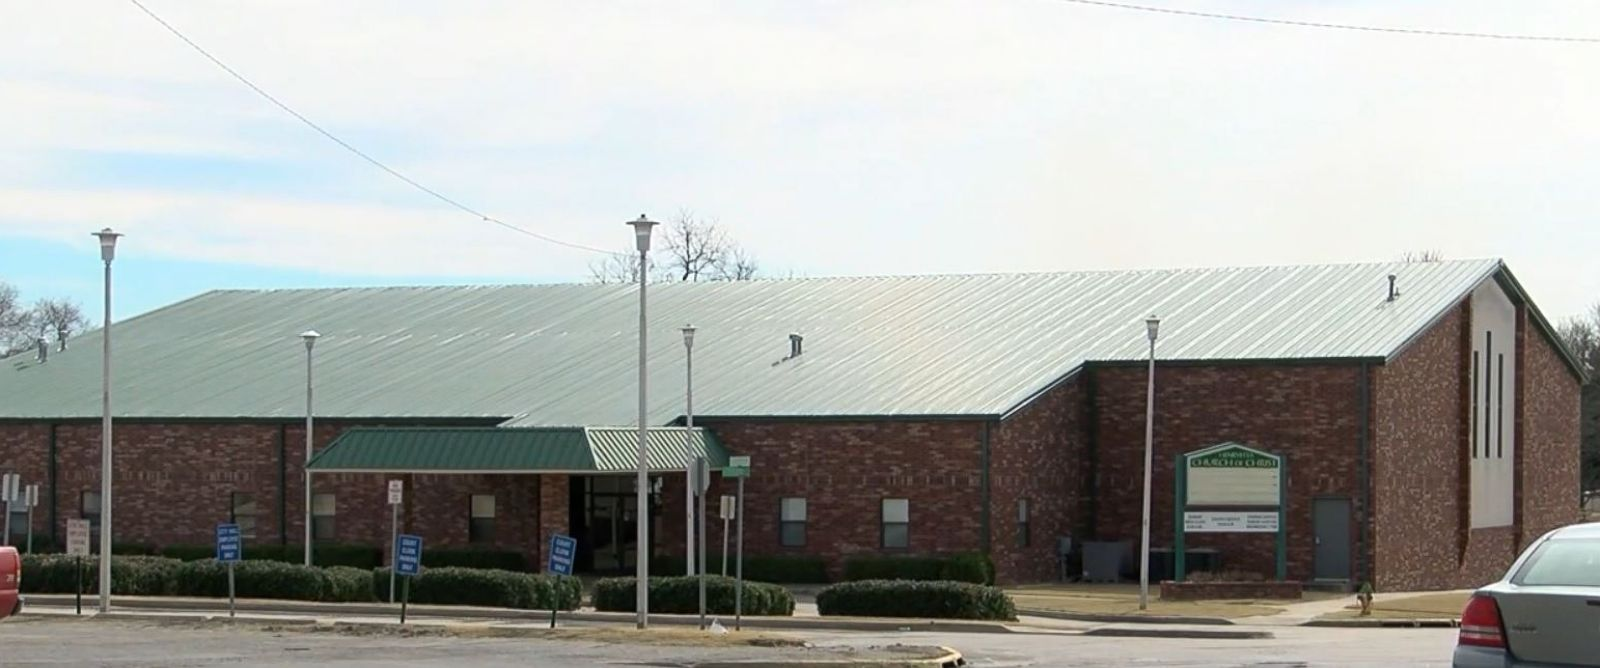 PHOTO: The Henryetta Church of Christ in Henryetta, Oklahoma, is 300 feet from a venue where a Valentines Day dance was slated. It had to be cancelled because of a city ordinance banning dancing within 500 feet of a church.